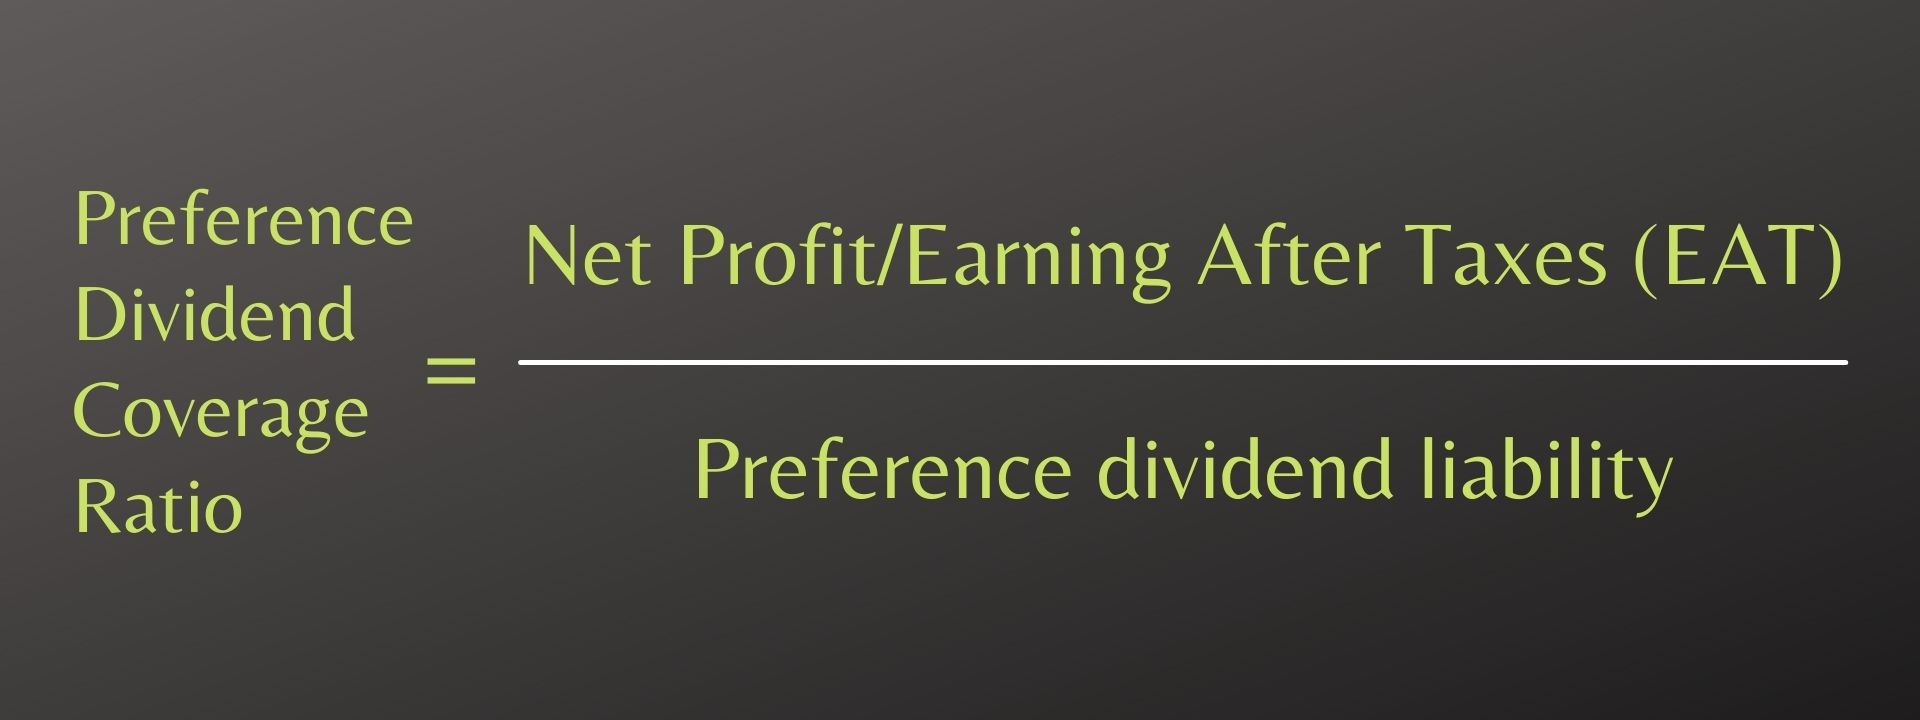 Preference Dividend Coverage Ratio